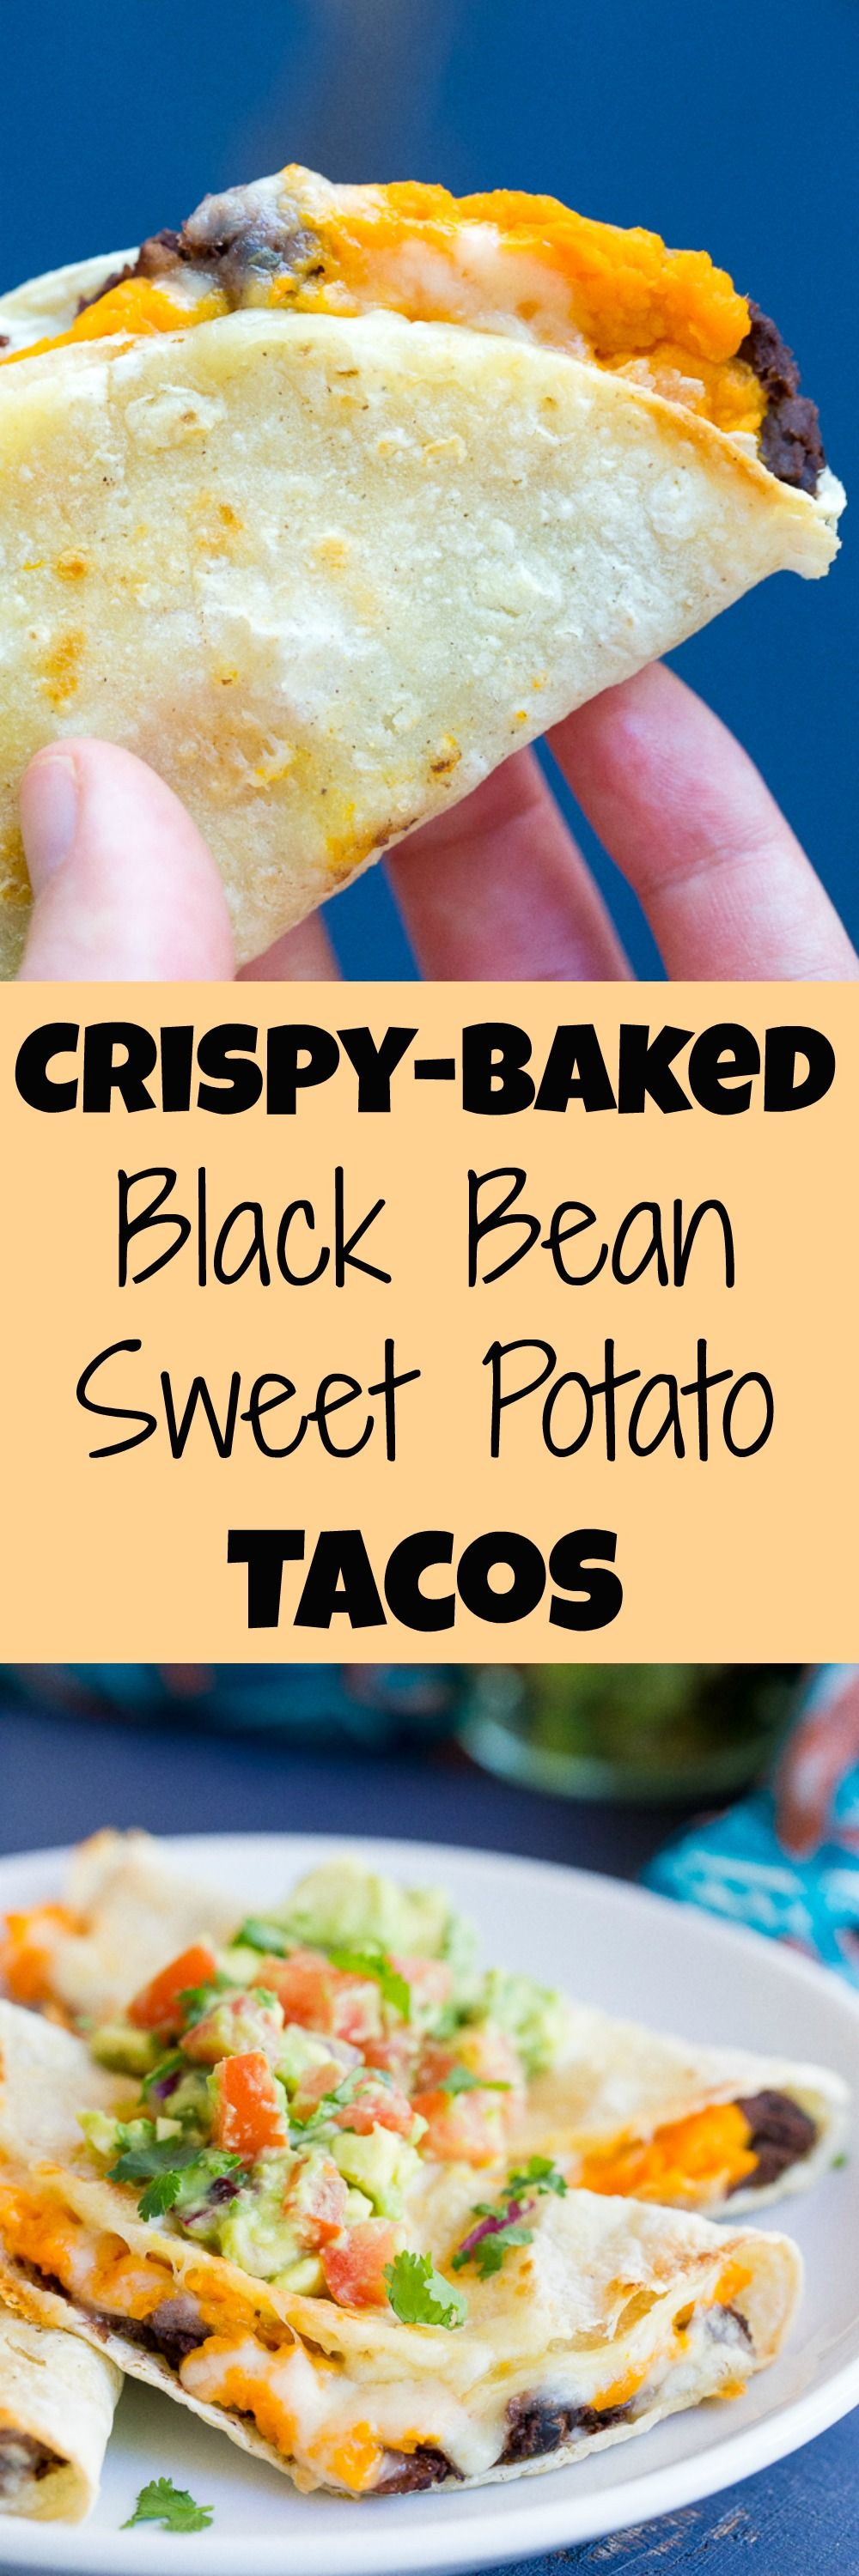 These Crispy Baked Black Bean and Sweet Potato Tacos just take 30 Minutes to make for a delicious vegetarian dinner that is also gluten free!